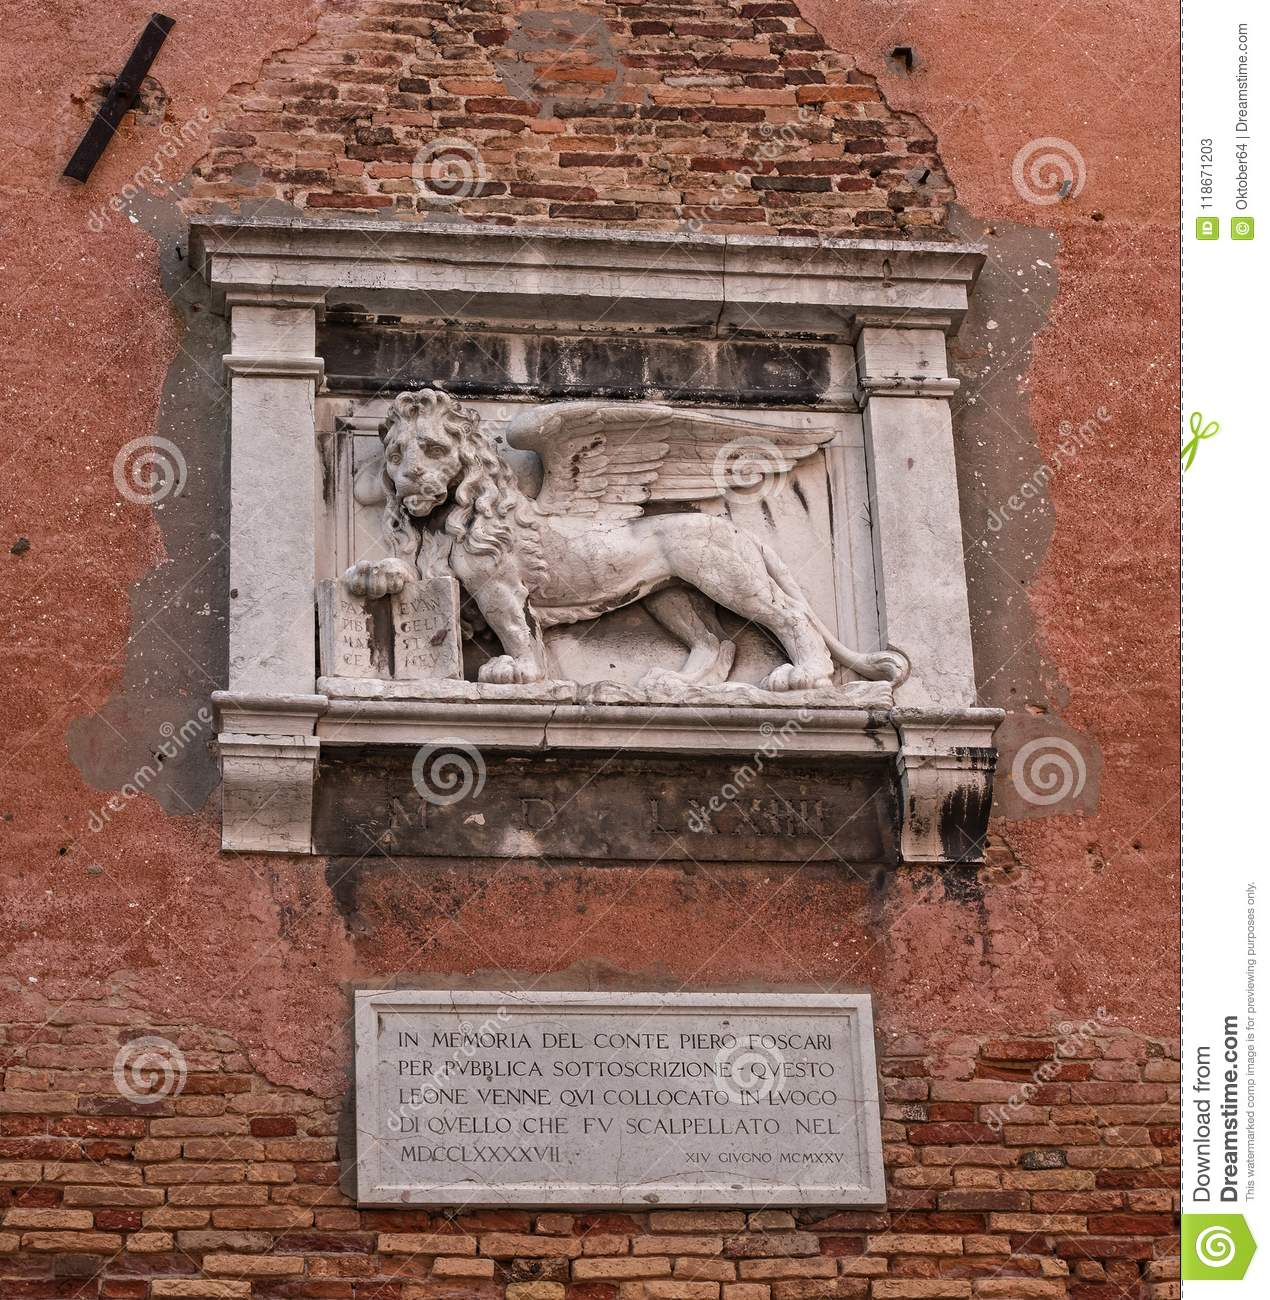 Stone bas-relief of the Venetian lion on the wall of the Arsenal of Venice. The lion of St. Mark is a symbol of the city